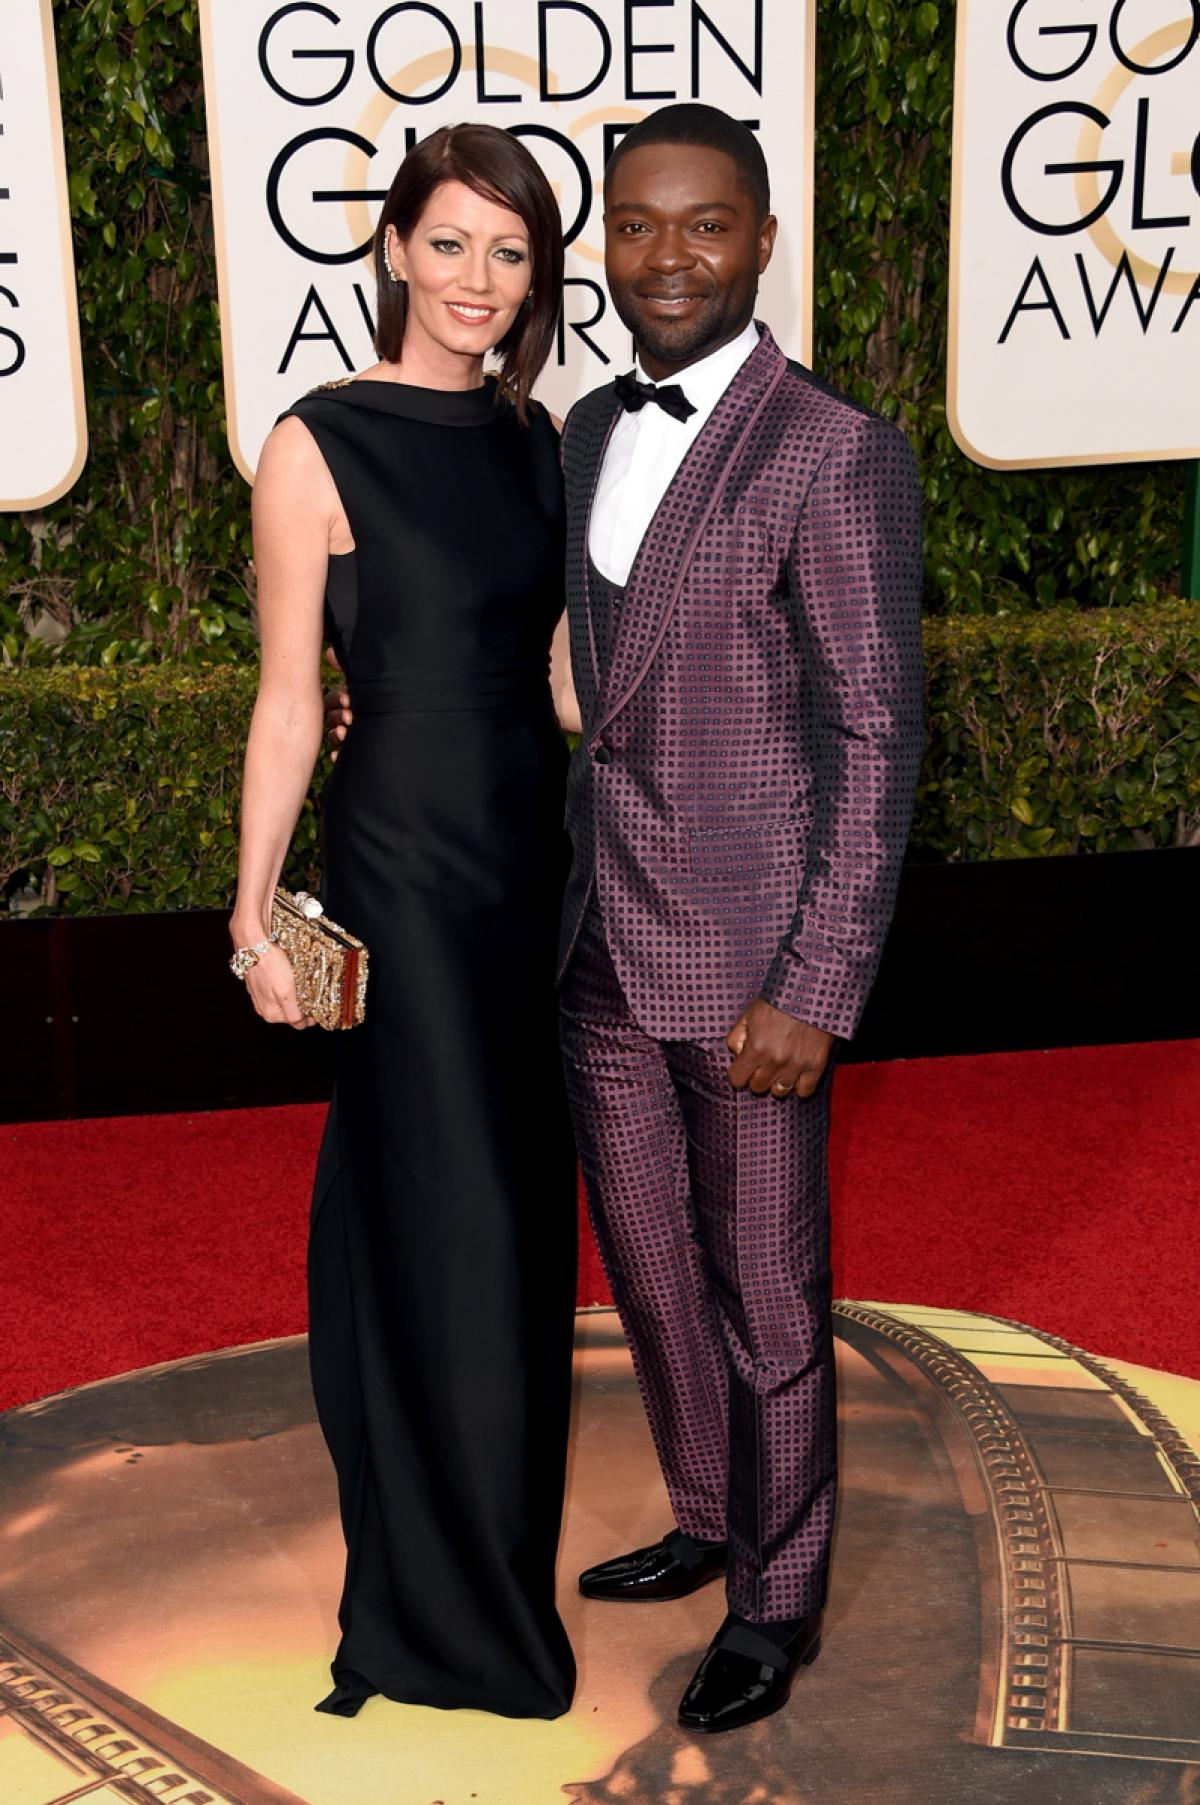 Golden Globes Fashion Top 10 Best Dressed And Not So Best